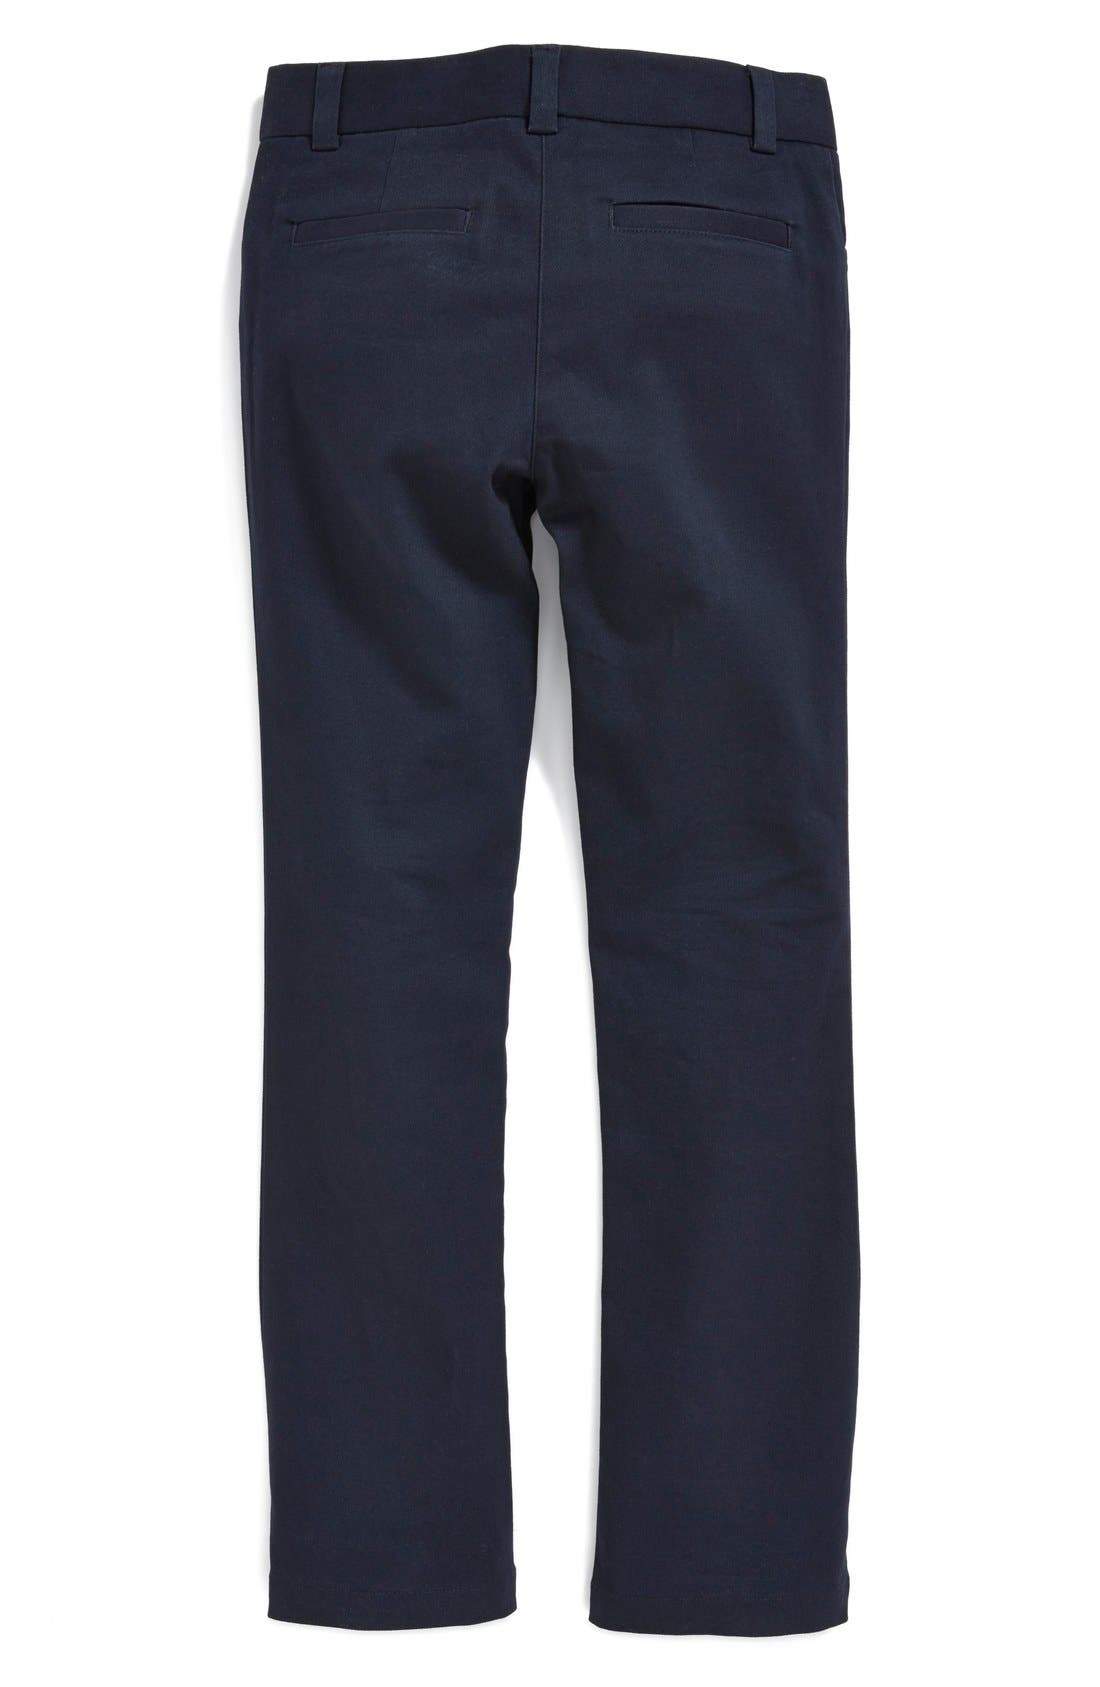 Alternate Image 2  - Nordstrom Straight Fit Stretch Cotton Pants (Little Girls & Big Girls) (Online Only)